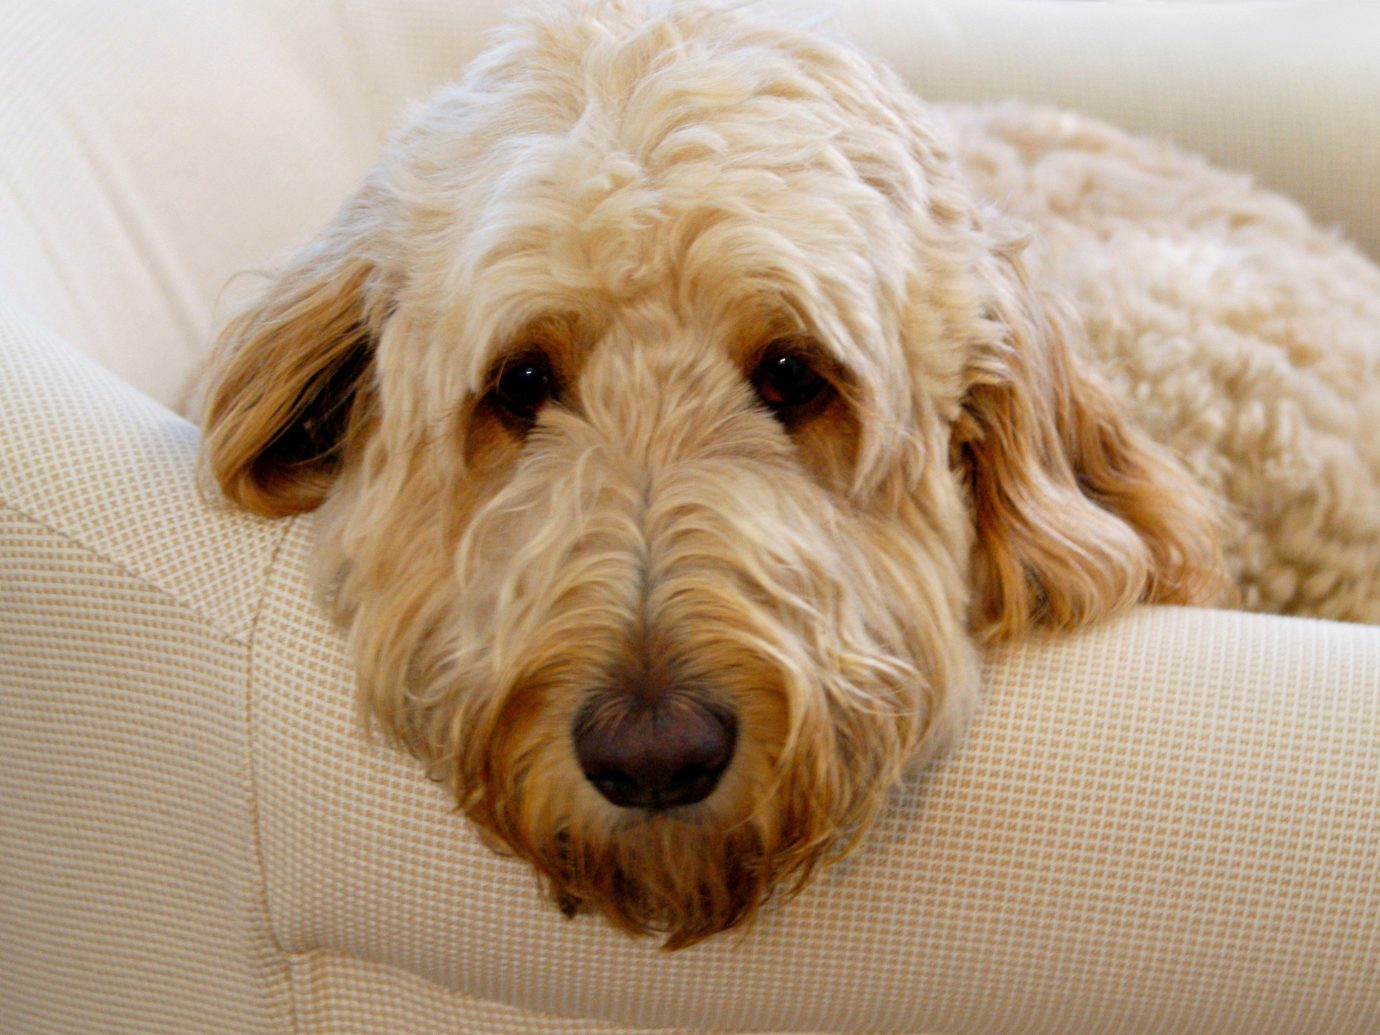 Hotels Dog indoor mammal goldendoodle dog breed vertebrate brown cockapoo dog like mammal head dog crossbreeds schnoodle poodle crossbreed irish soft coated wheaten terrier miniature poodle dandie dinmont terrier spinone italiano glen of imaal terrier petit basset griffon vendéen